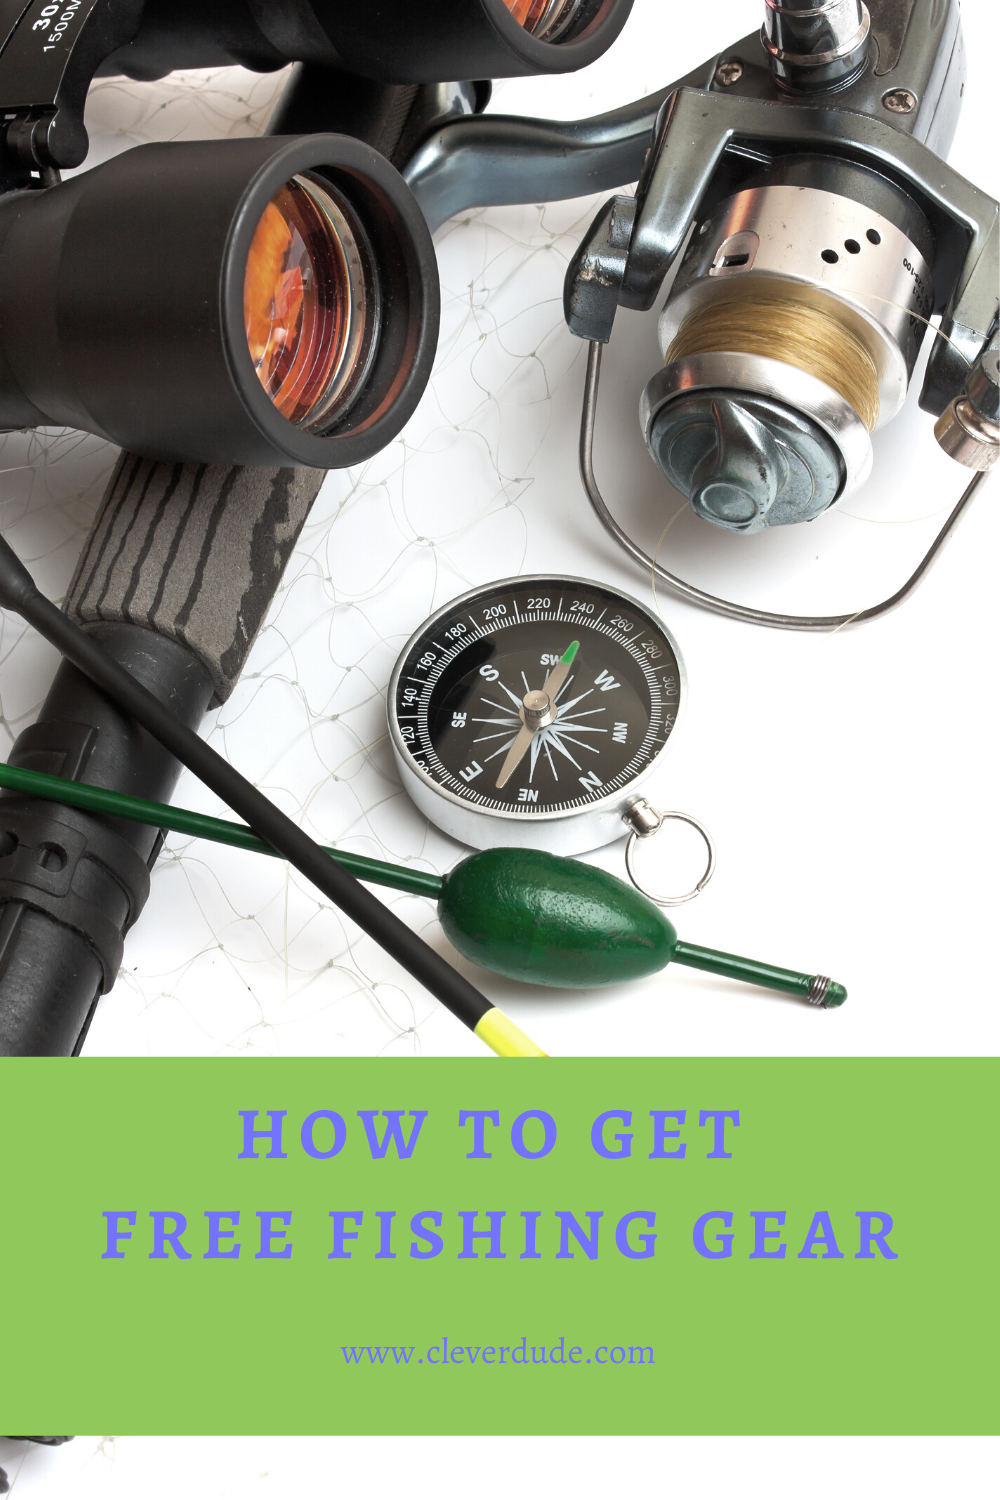 How to Get Free Fishing Gear